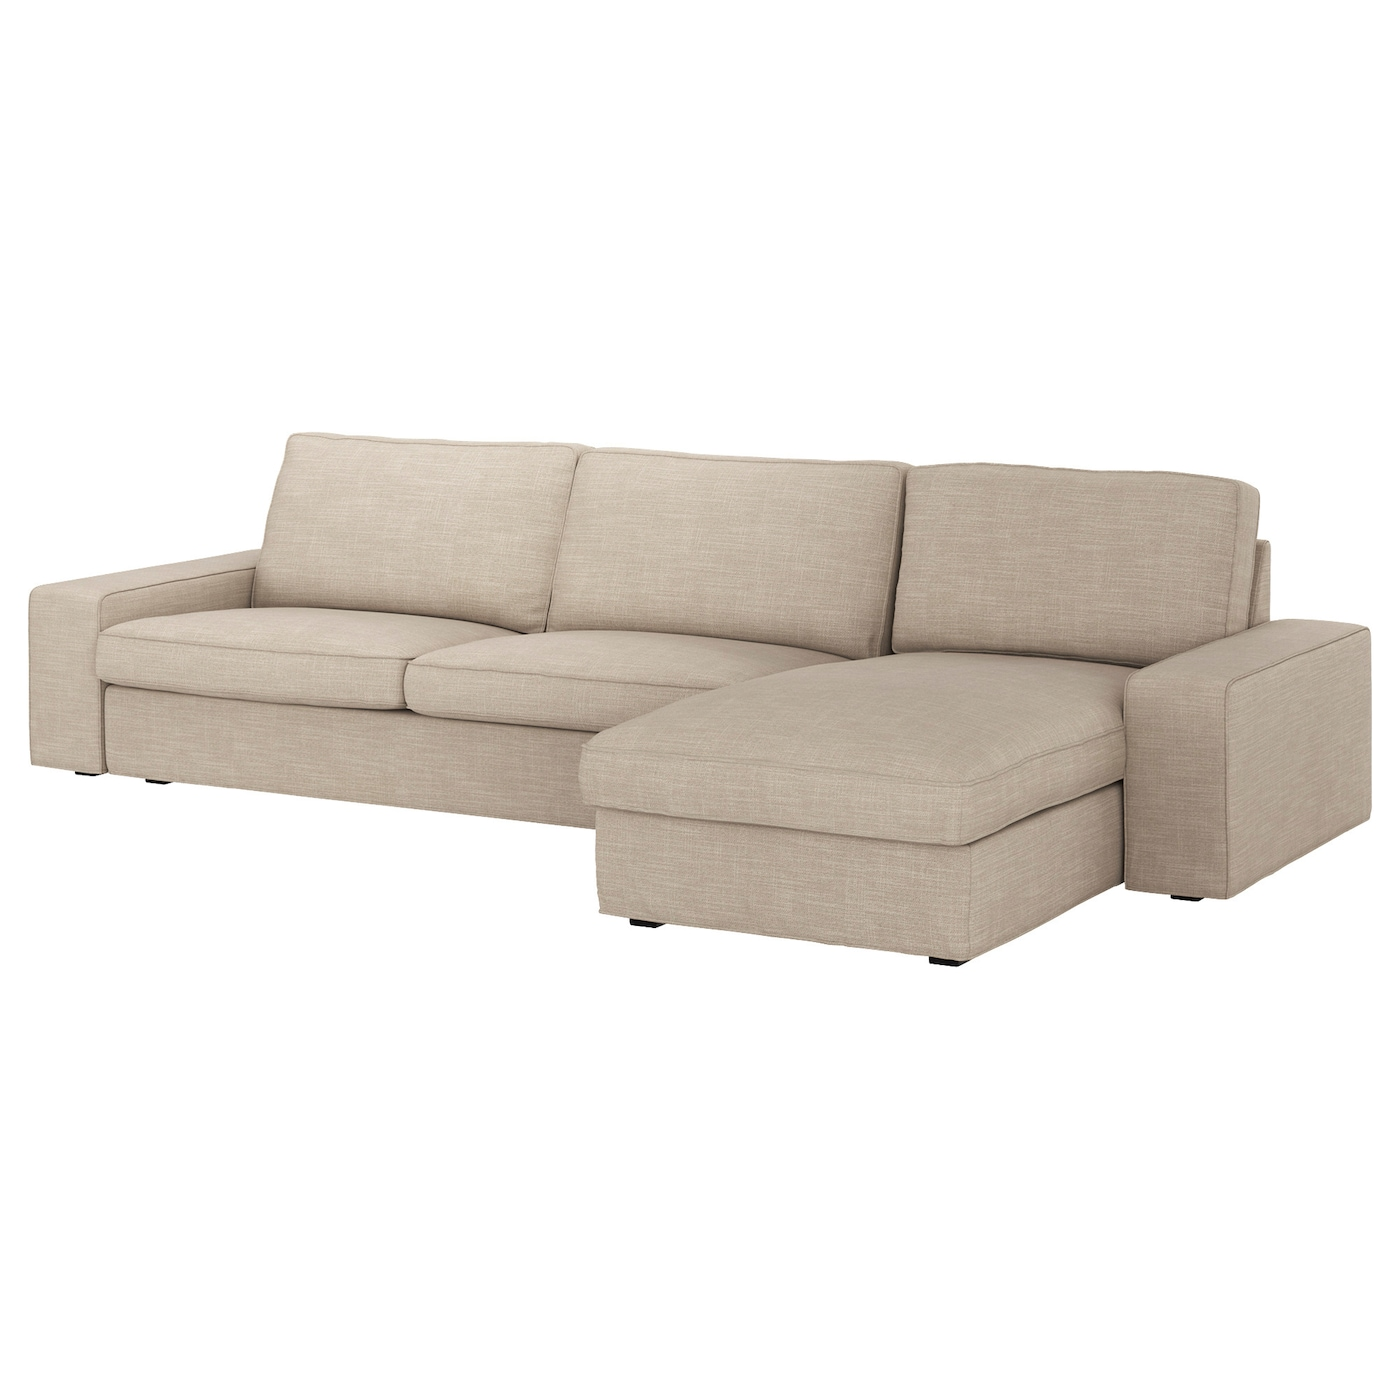 Kivik three seat sofa and chaise longue hillared beige ikea - Chaise longue jardin ikea ...